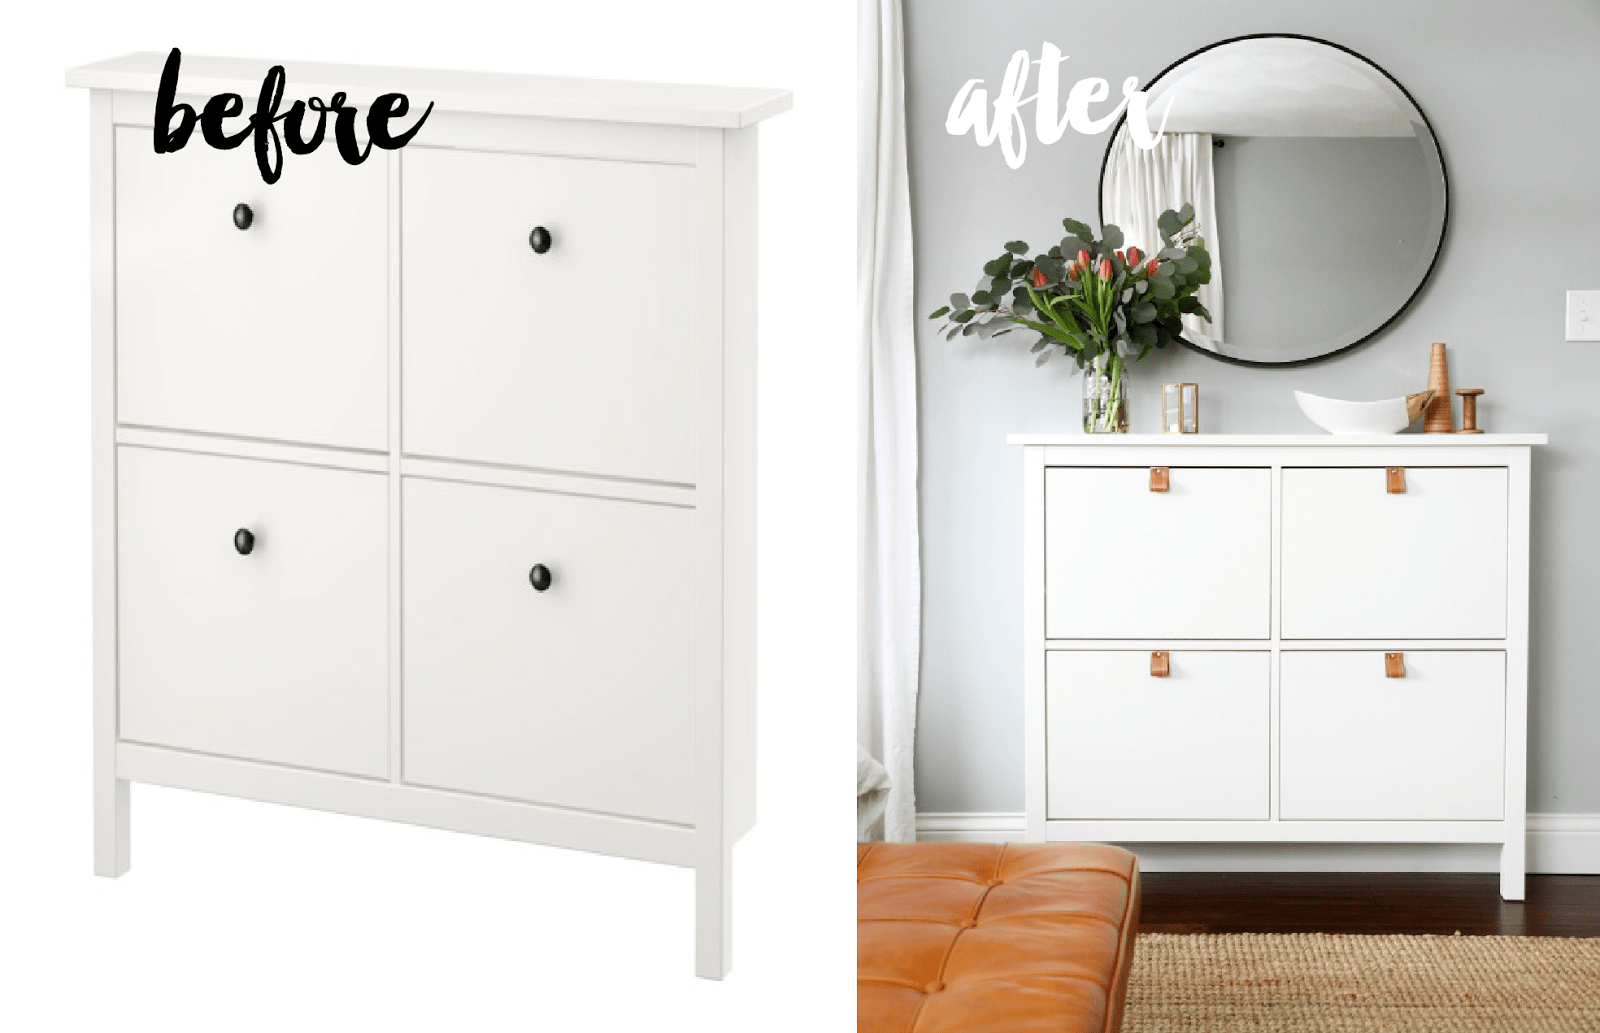 Ikea Hacks Hemnes 11 Ikea Hacks To Help You Go From Bleak To Chic For Cheap